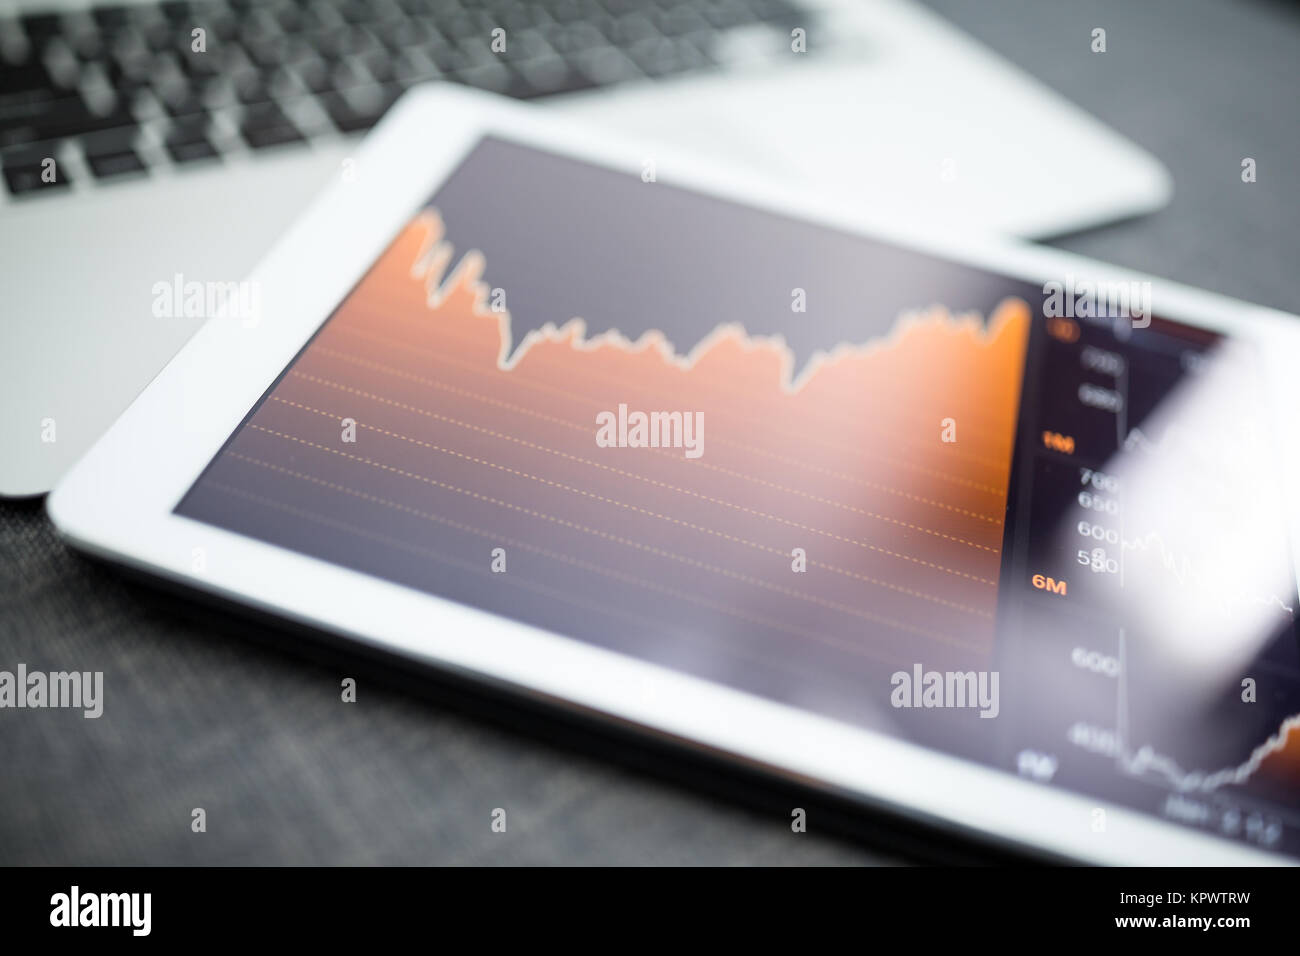 Financial data analysis concept - Stock Image